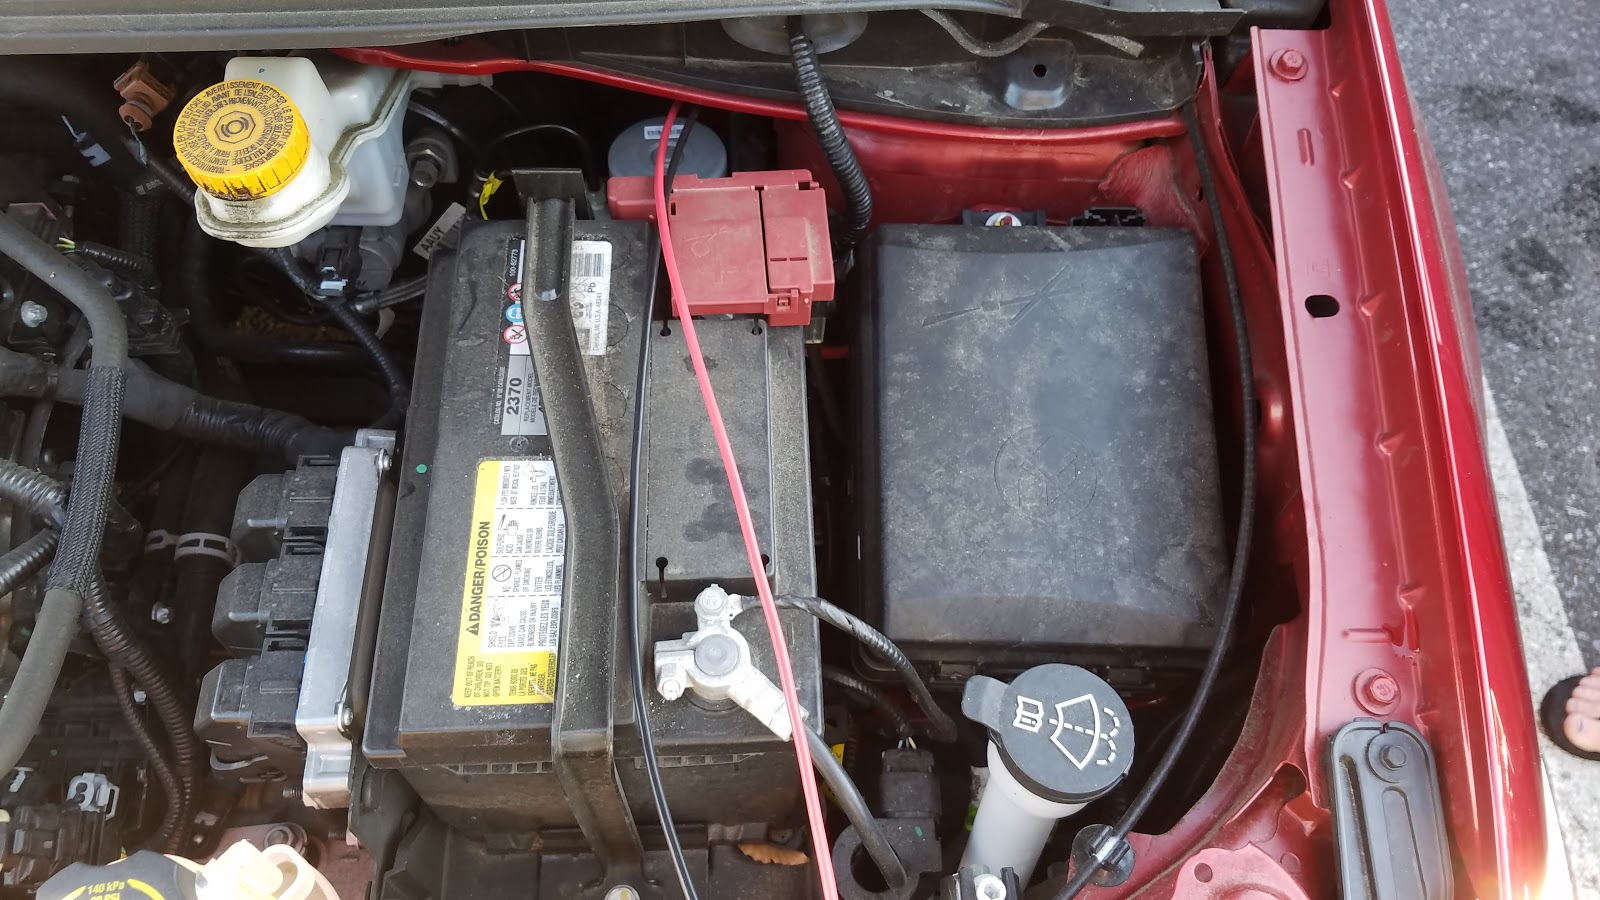 2013 chevy sonic battery wiring wiring diagram datasource 2013 chevy sonic battery wiring [ 1600 x 900 Pixel ]